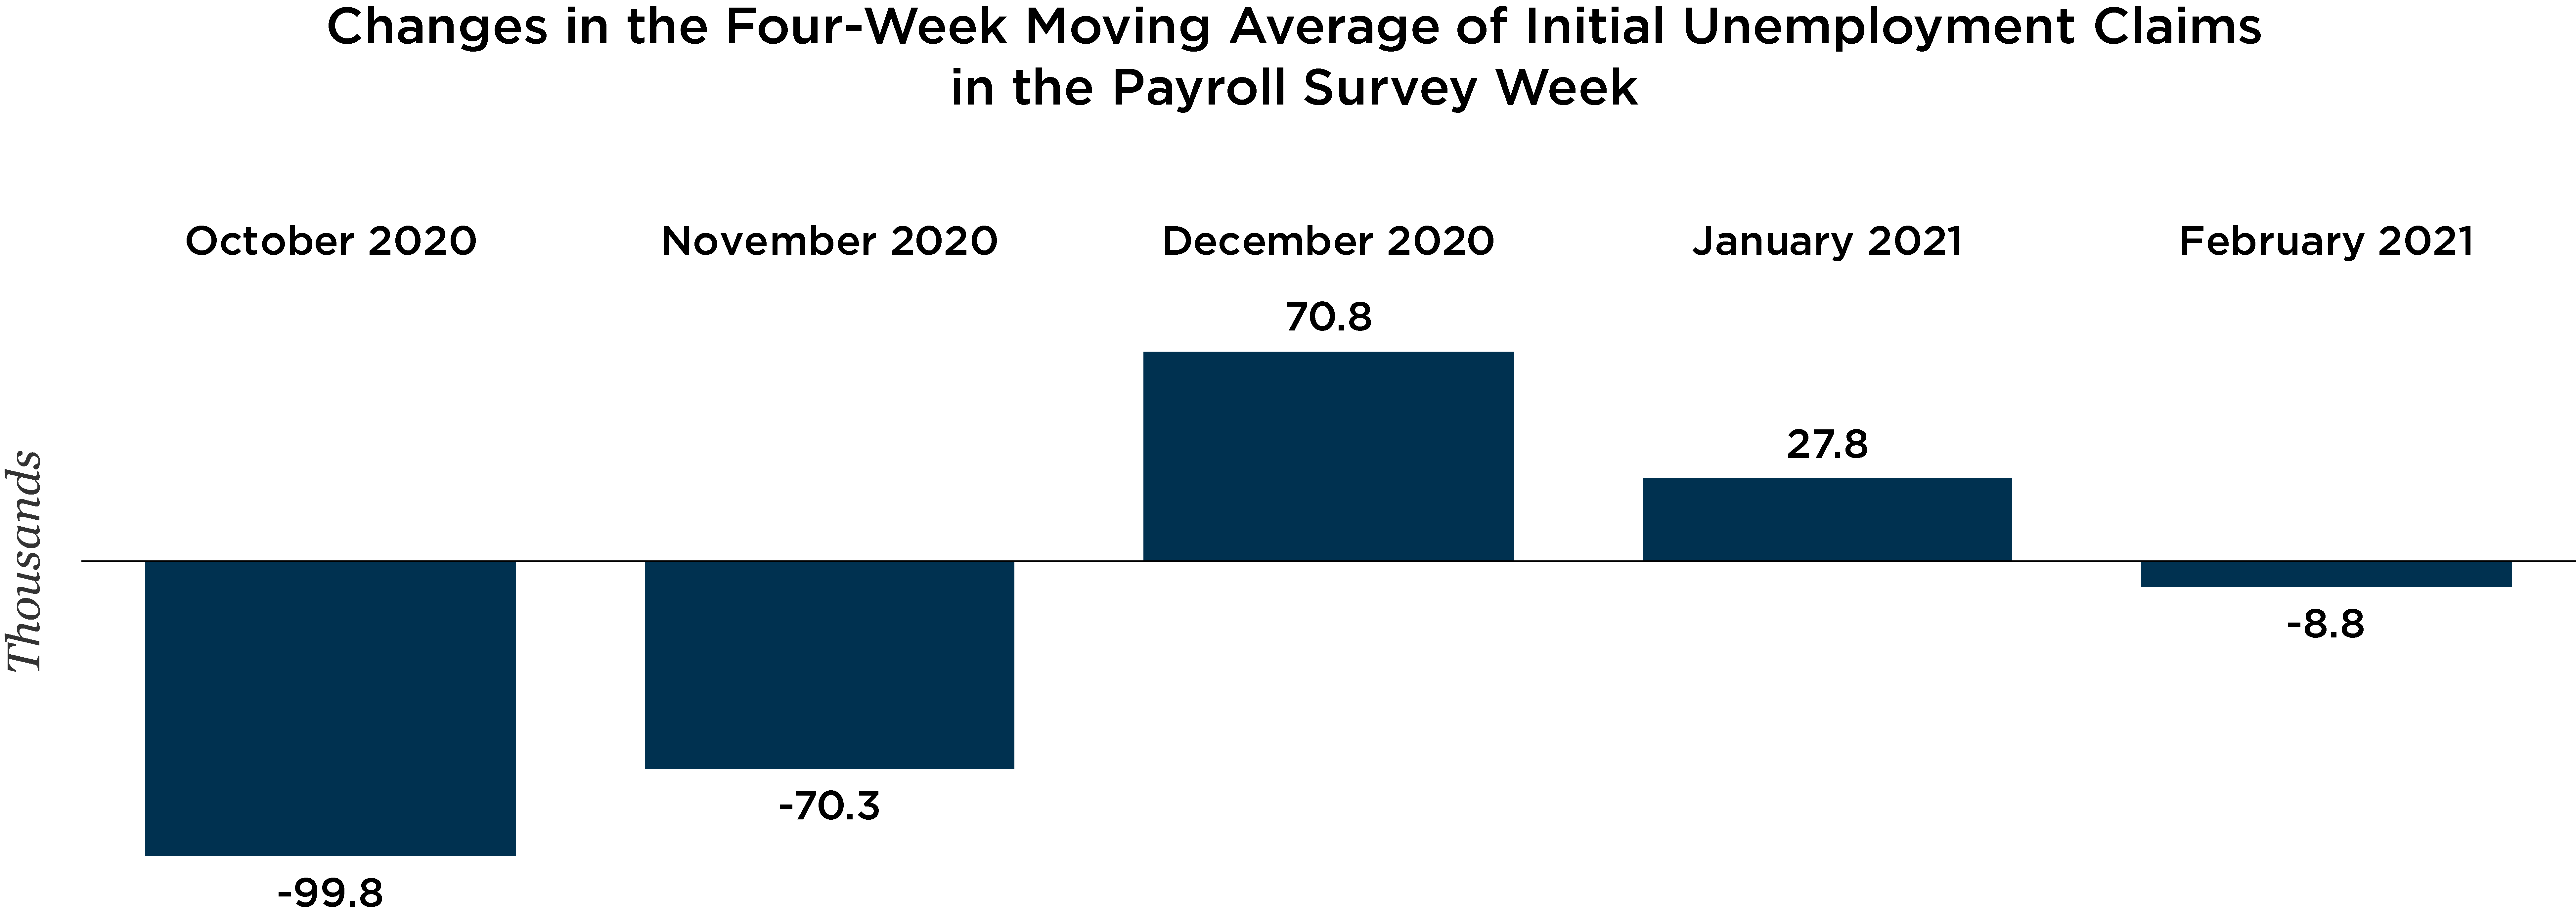 Graph depicting changes in the four week moving average of initial UI claims in the payroll survey week